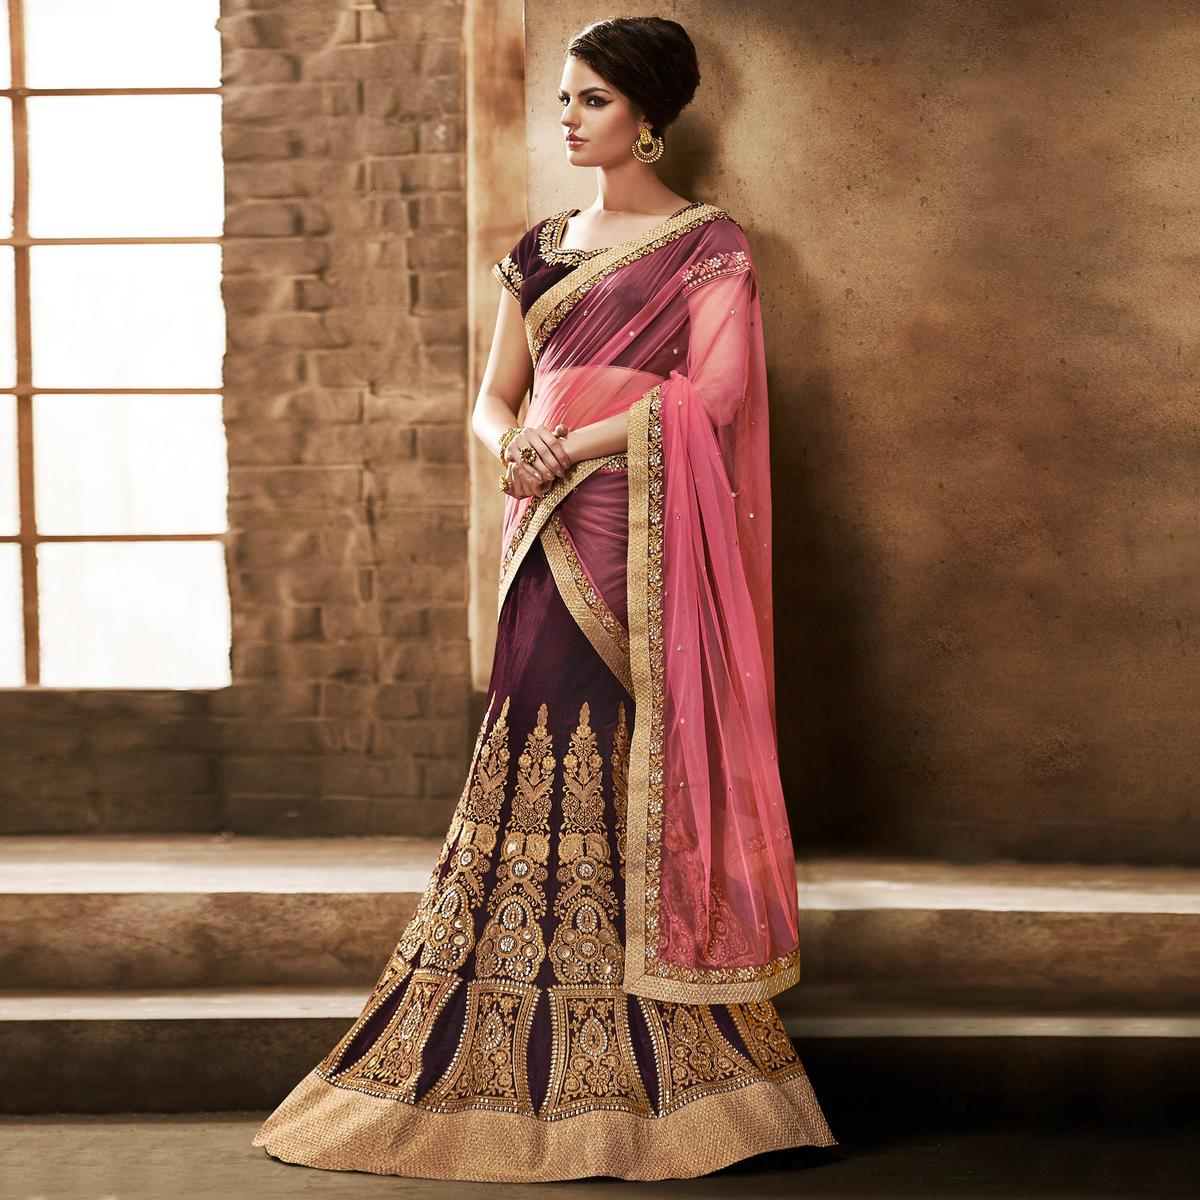 NAKKASHI - Preferable Maroon Colored Party Wear Embroidered Velvet Lehenga Choli